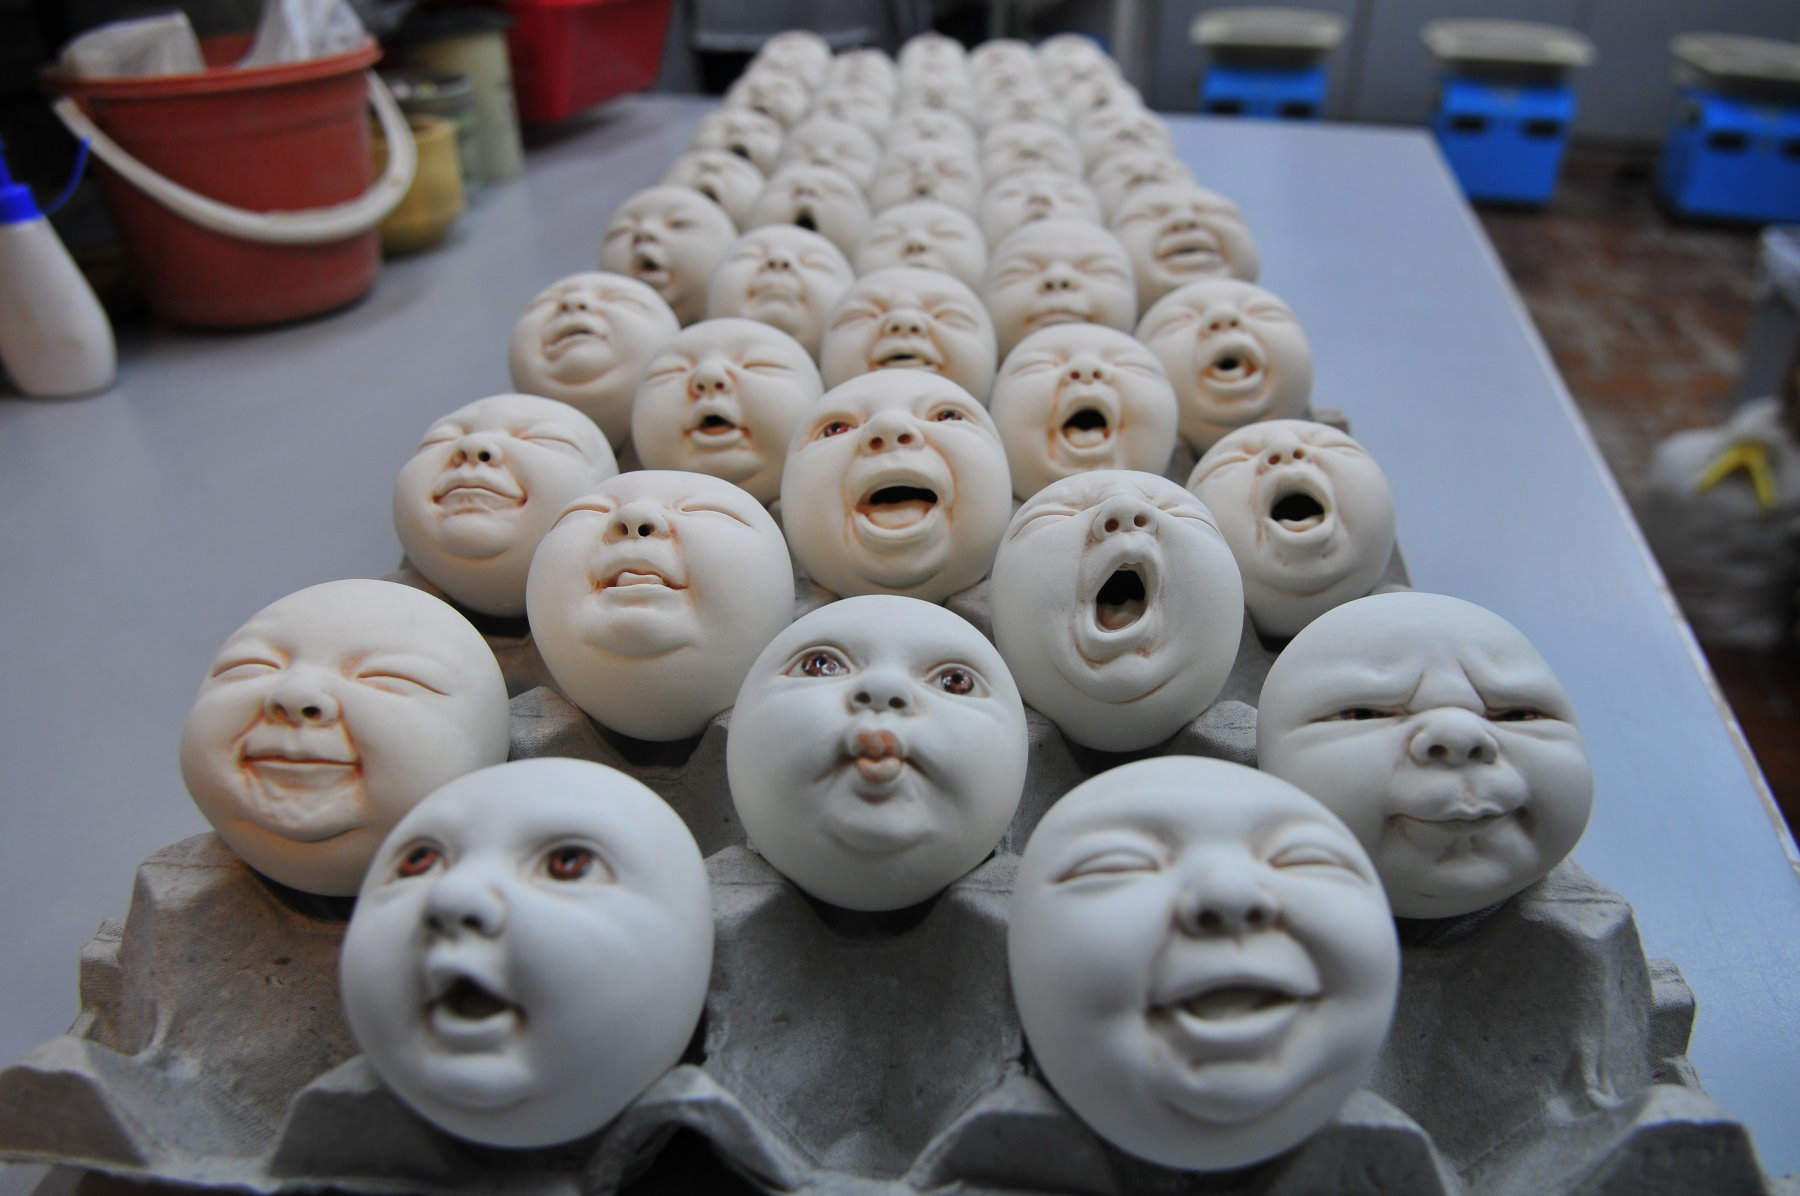 Another project with babies - Johnson Tsang